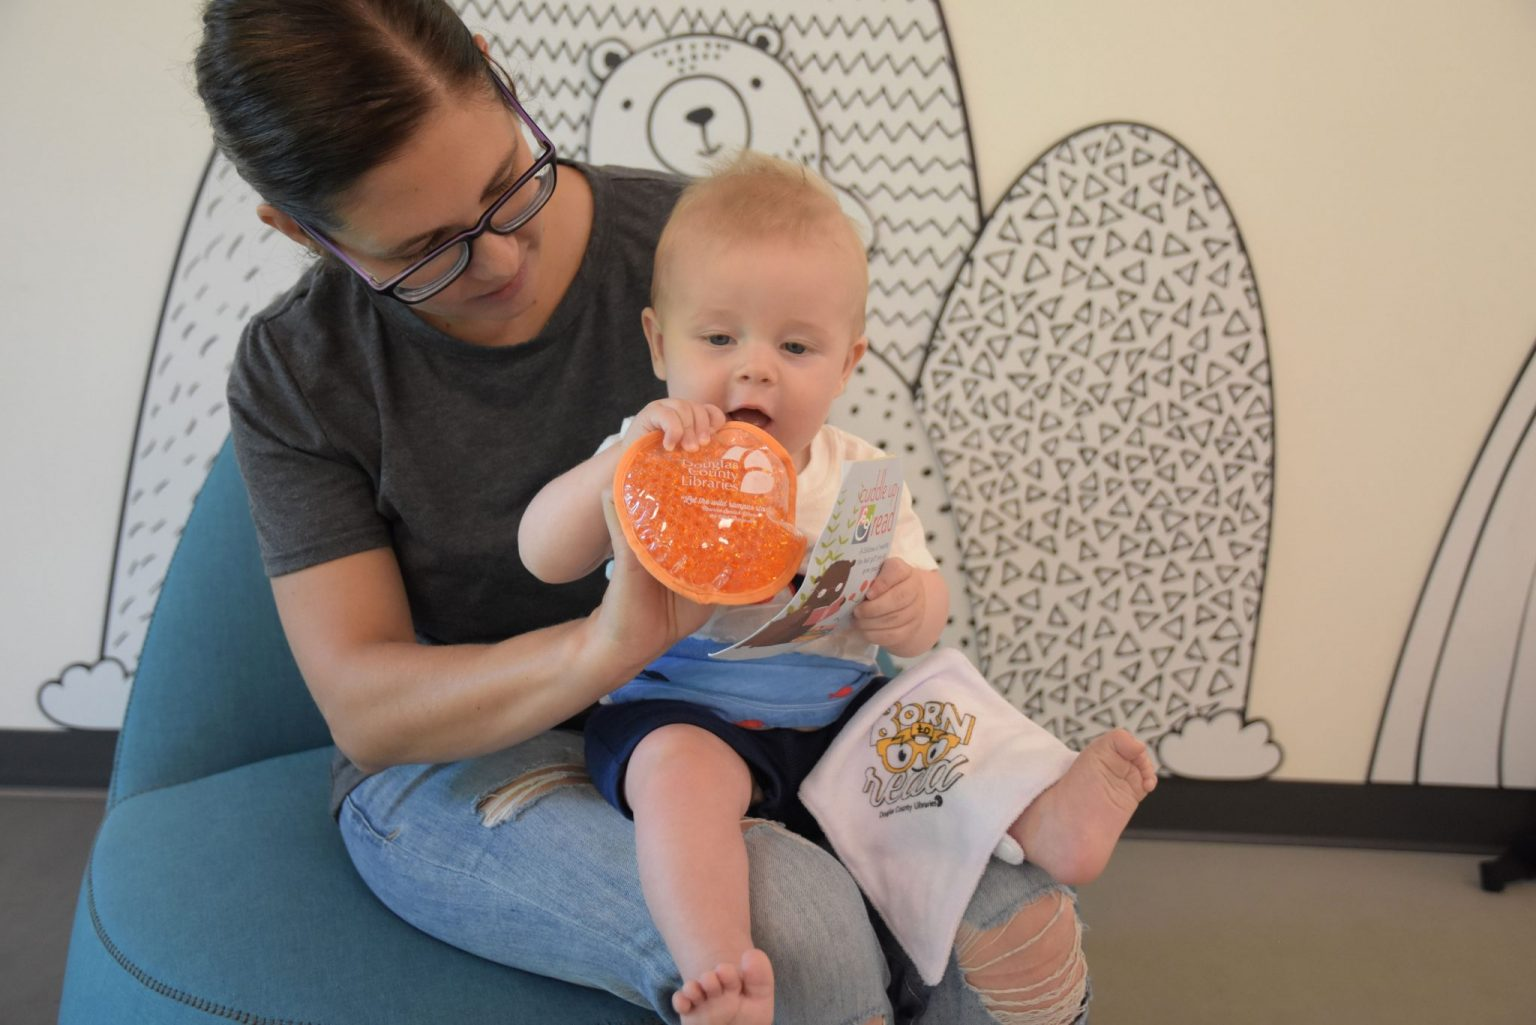 Cuddle Up & Read provides new parents with a meaningful introduction to the library and its early literacy services.